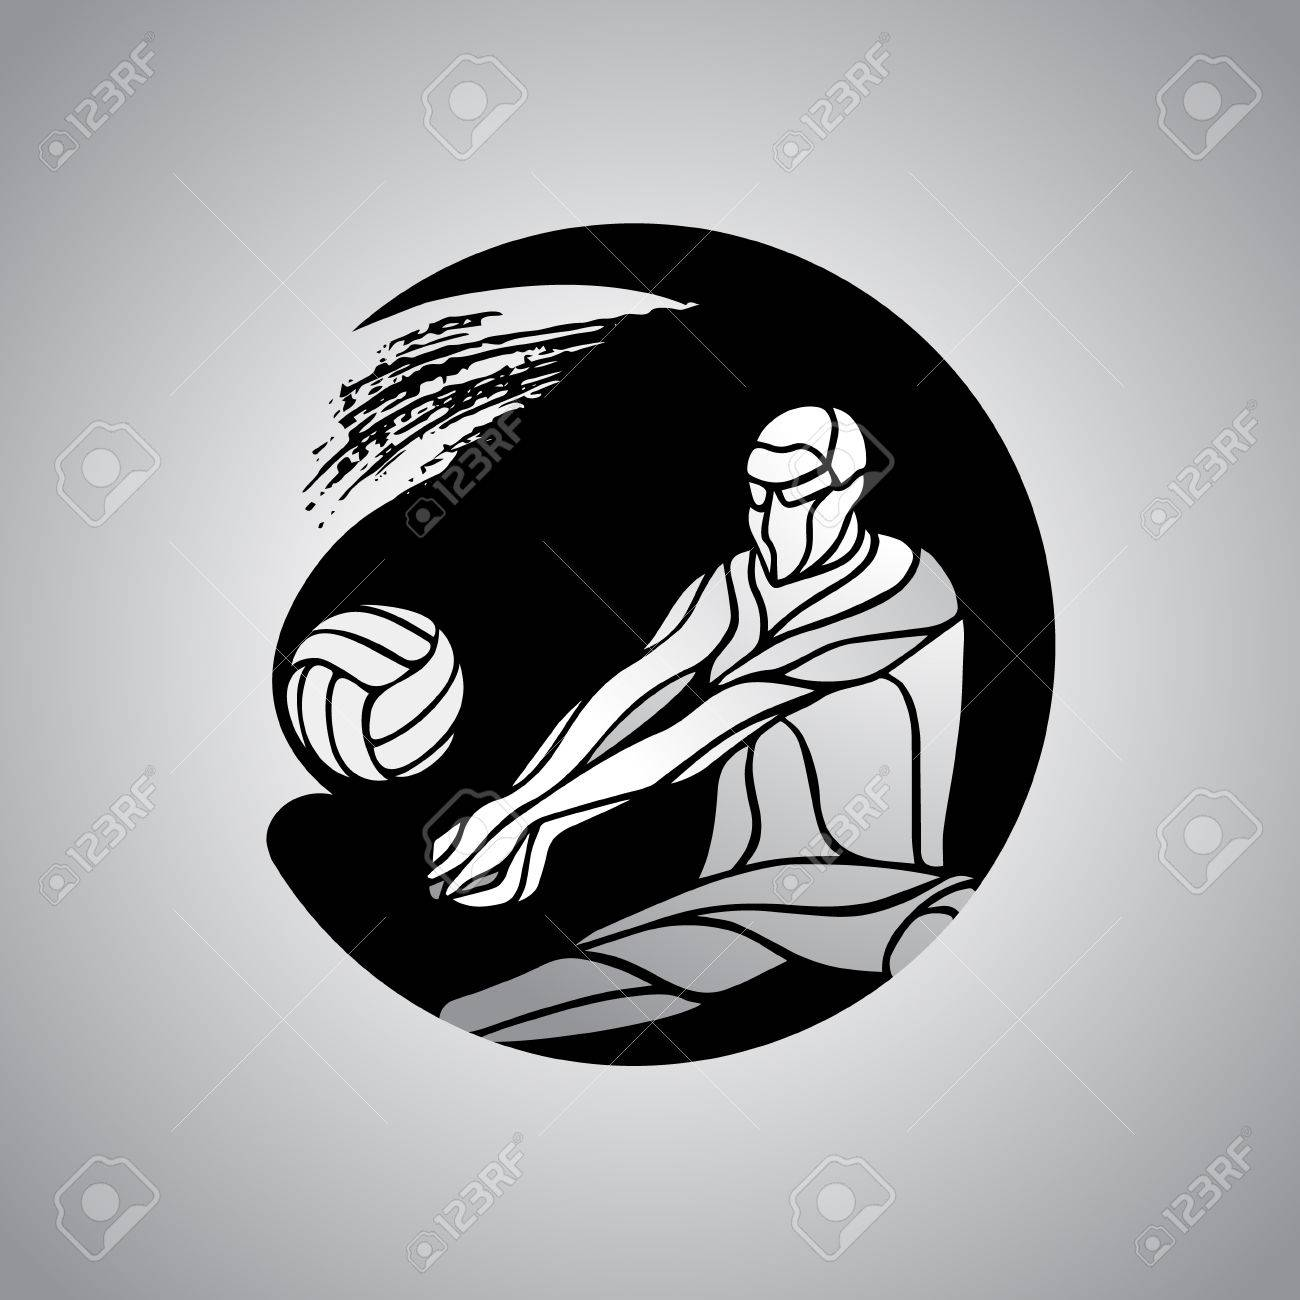 Volleyball Player Receiving Feed Icon Silhouette Of A Abstract Royalty Free Cliparts Vectors And Stock Illustration Image 56891200